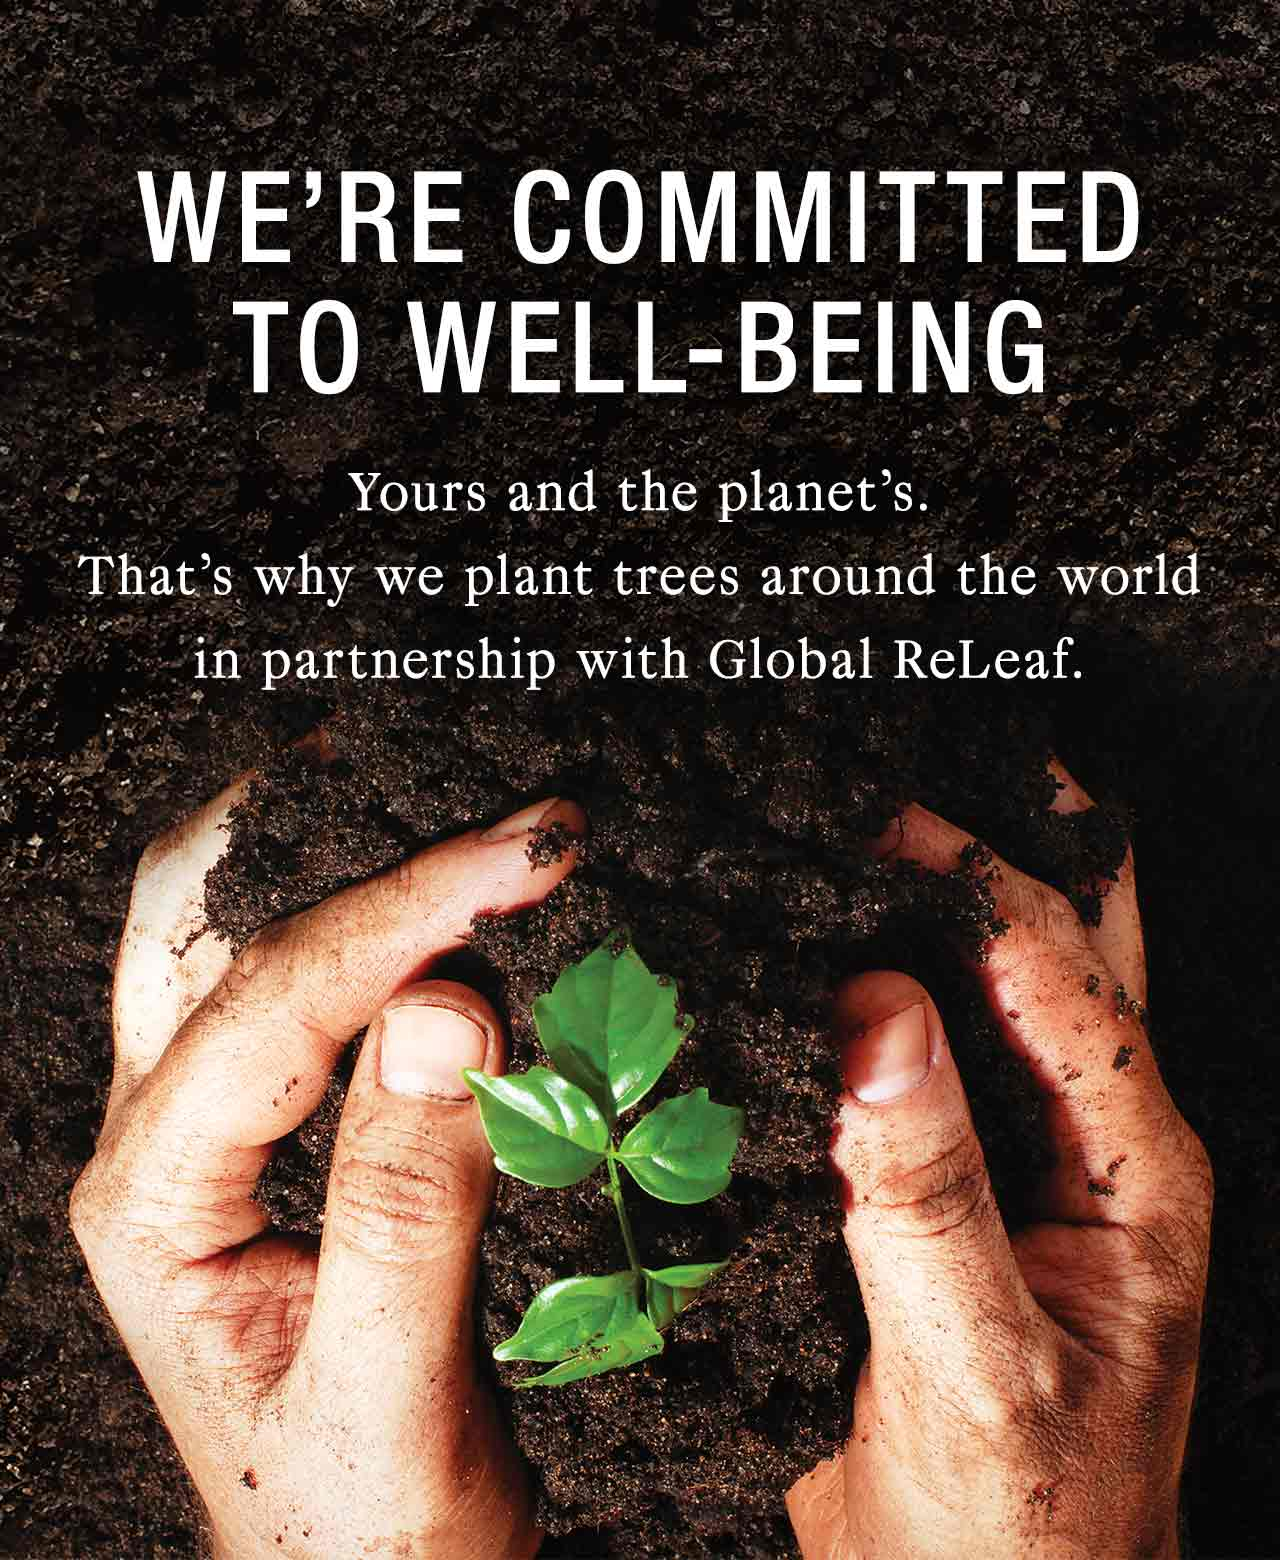 We're committed to well-being